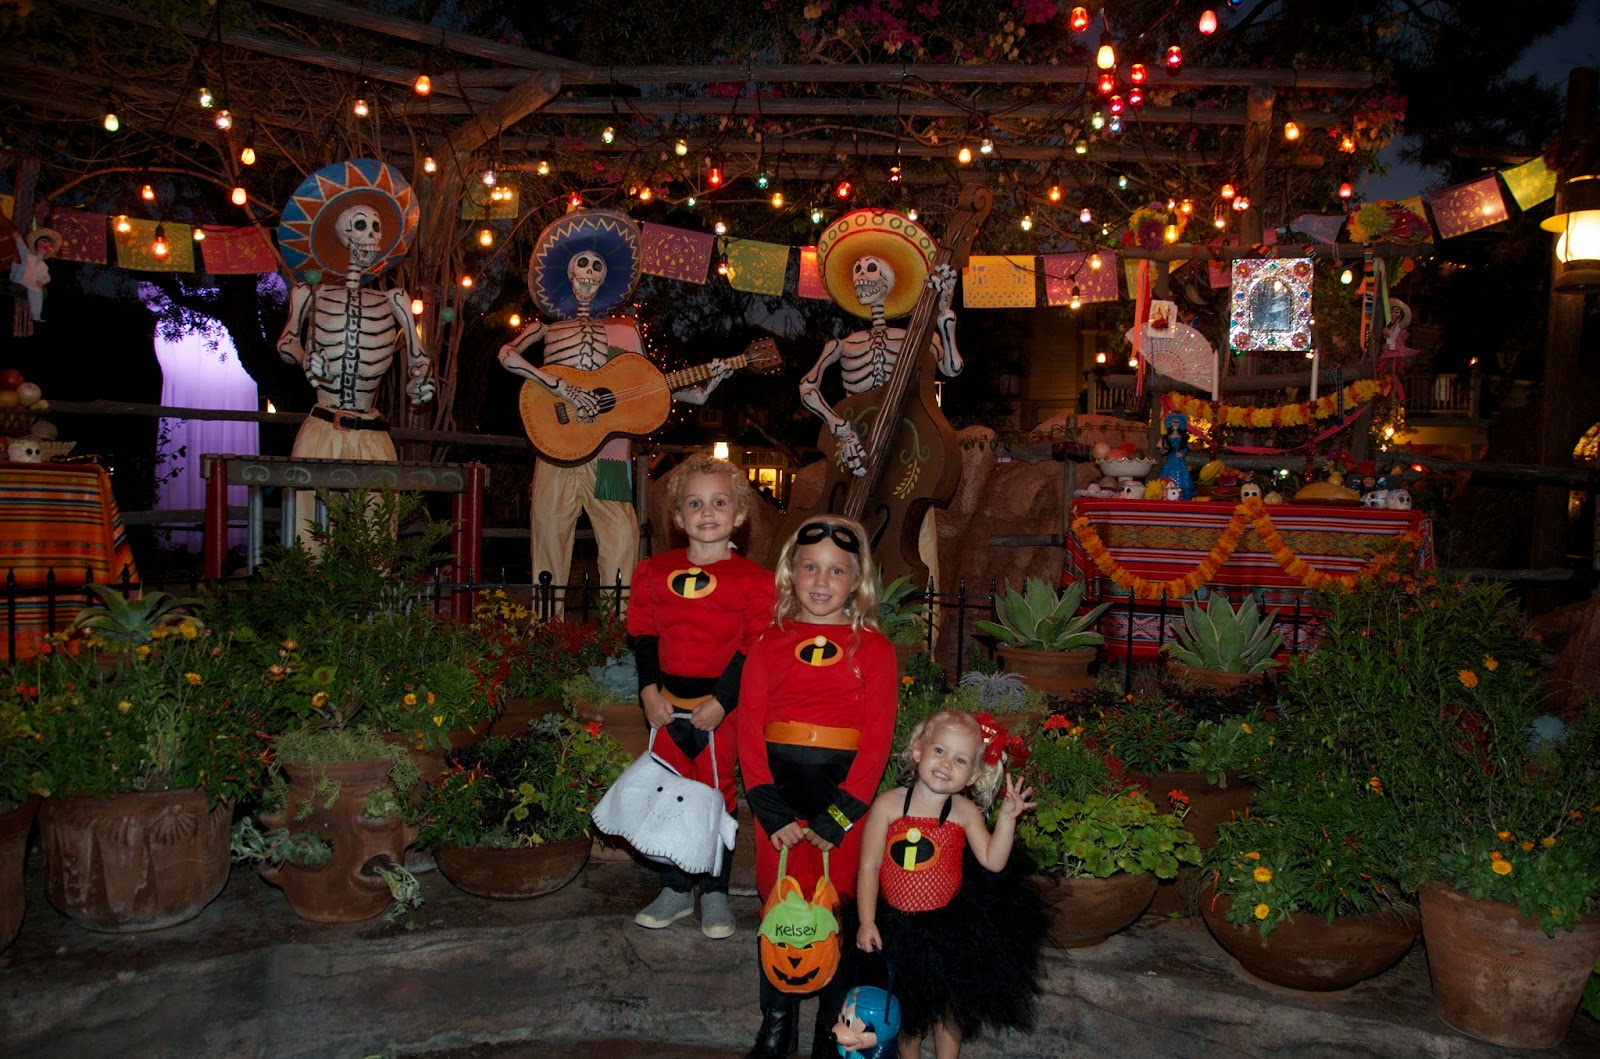 Anaheim Castle House Blog: Mickey's Halloween Party at Disneyland ...